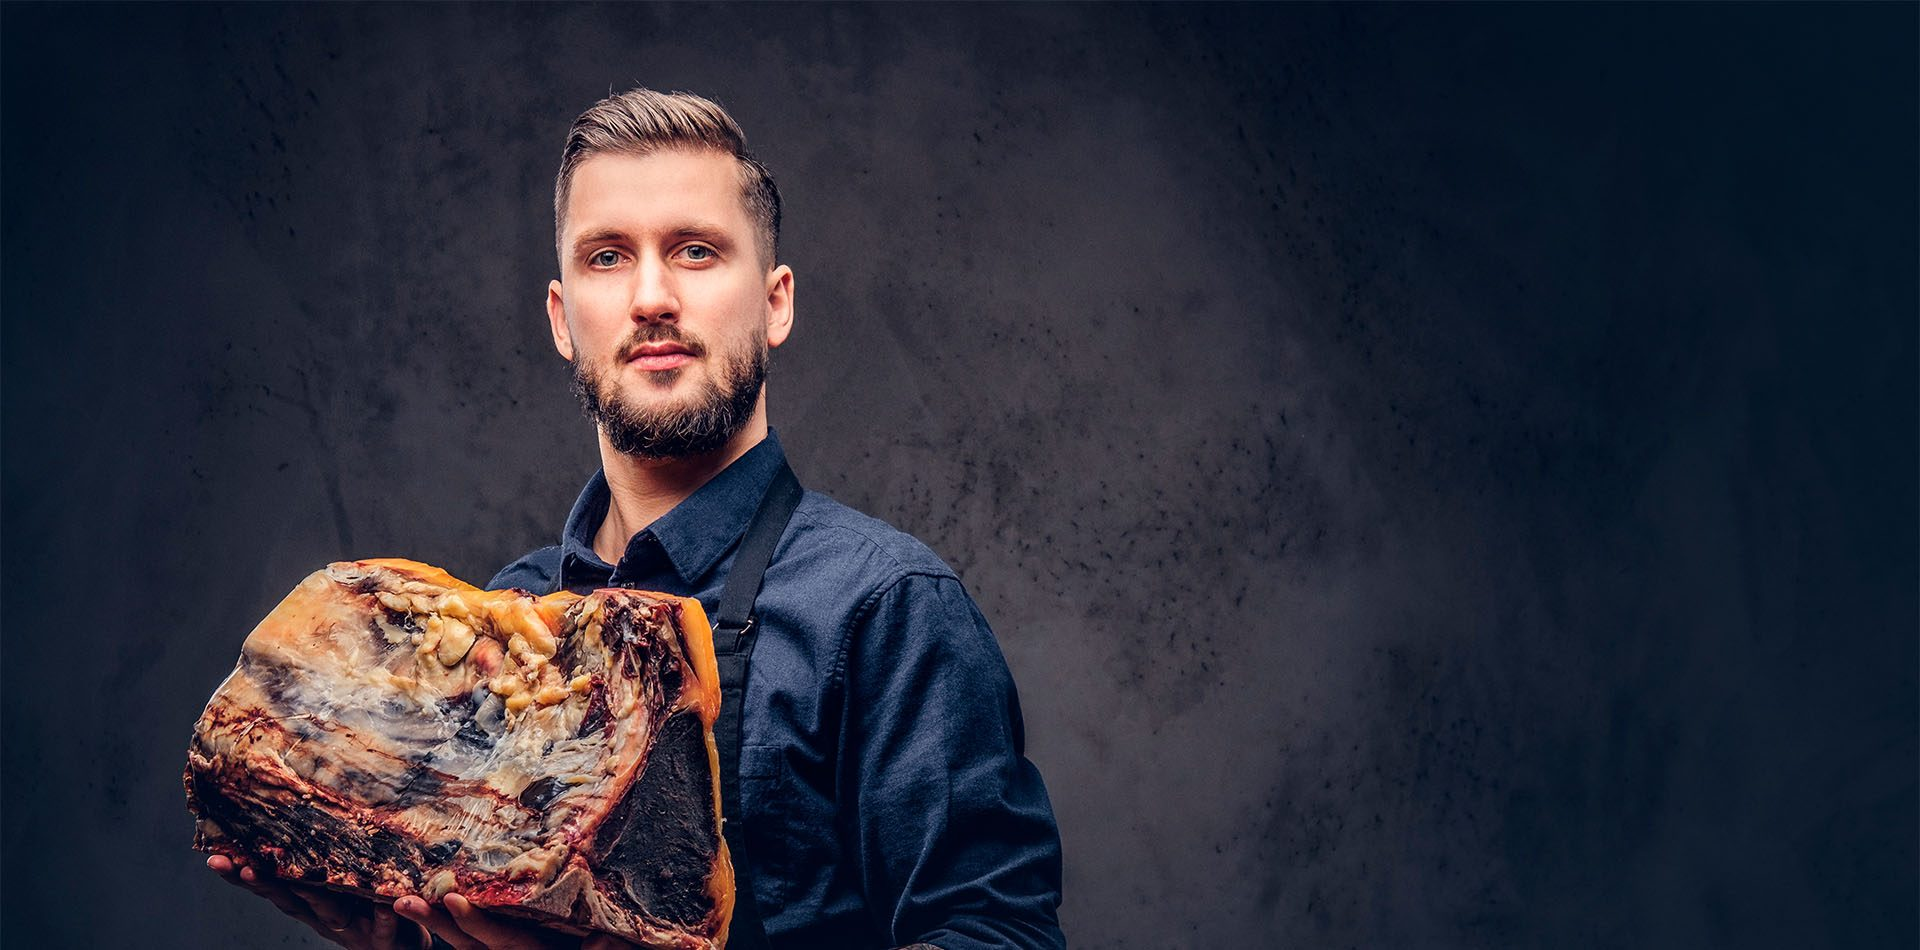 Professional butcher with raw smoked meat in a studio.